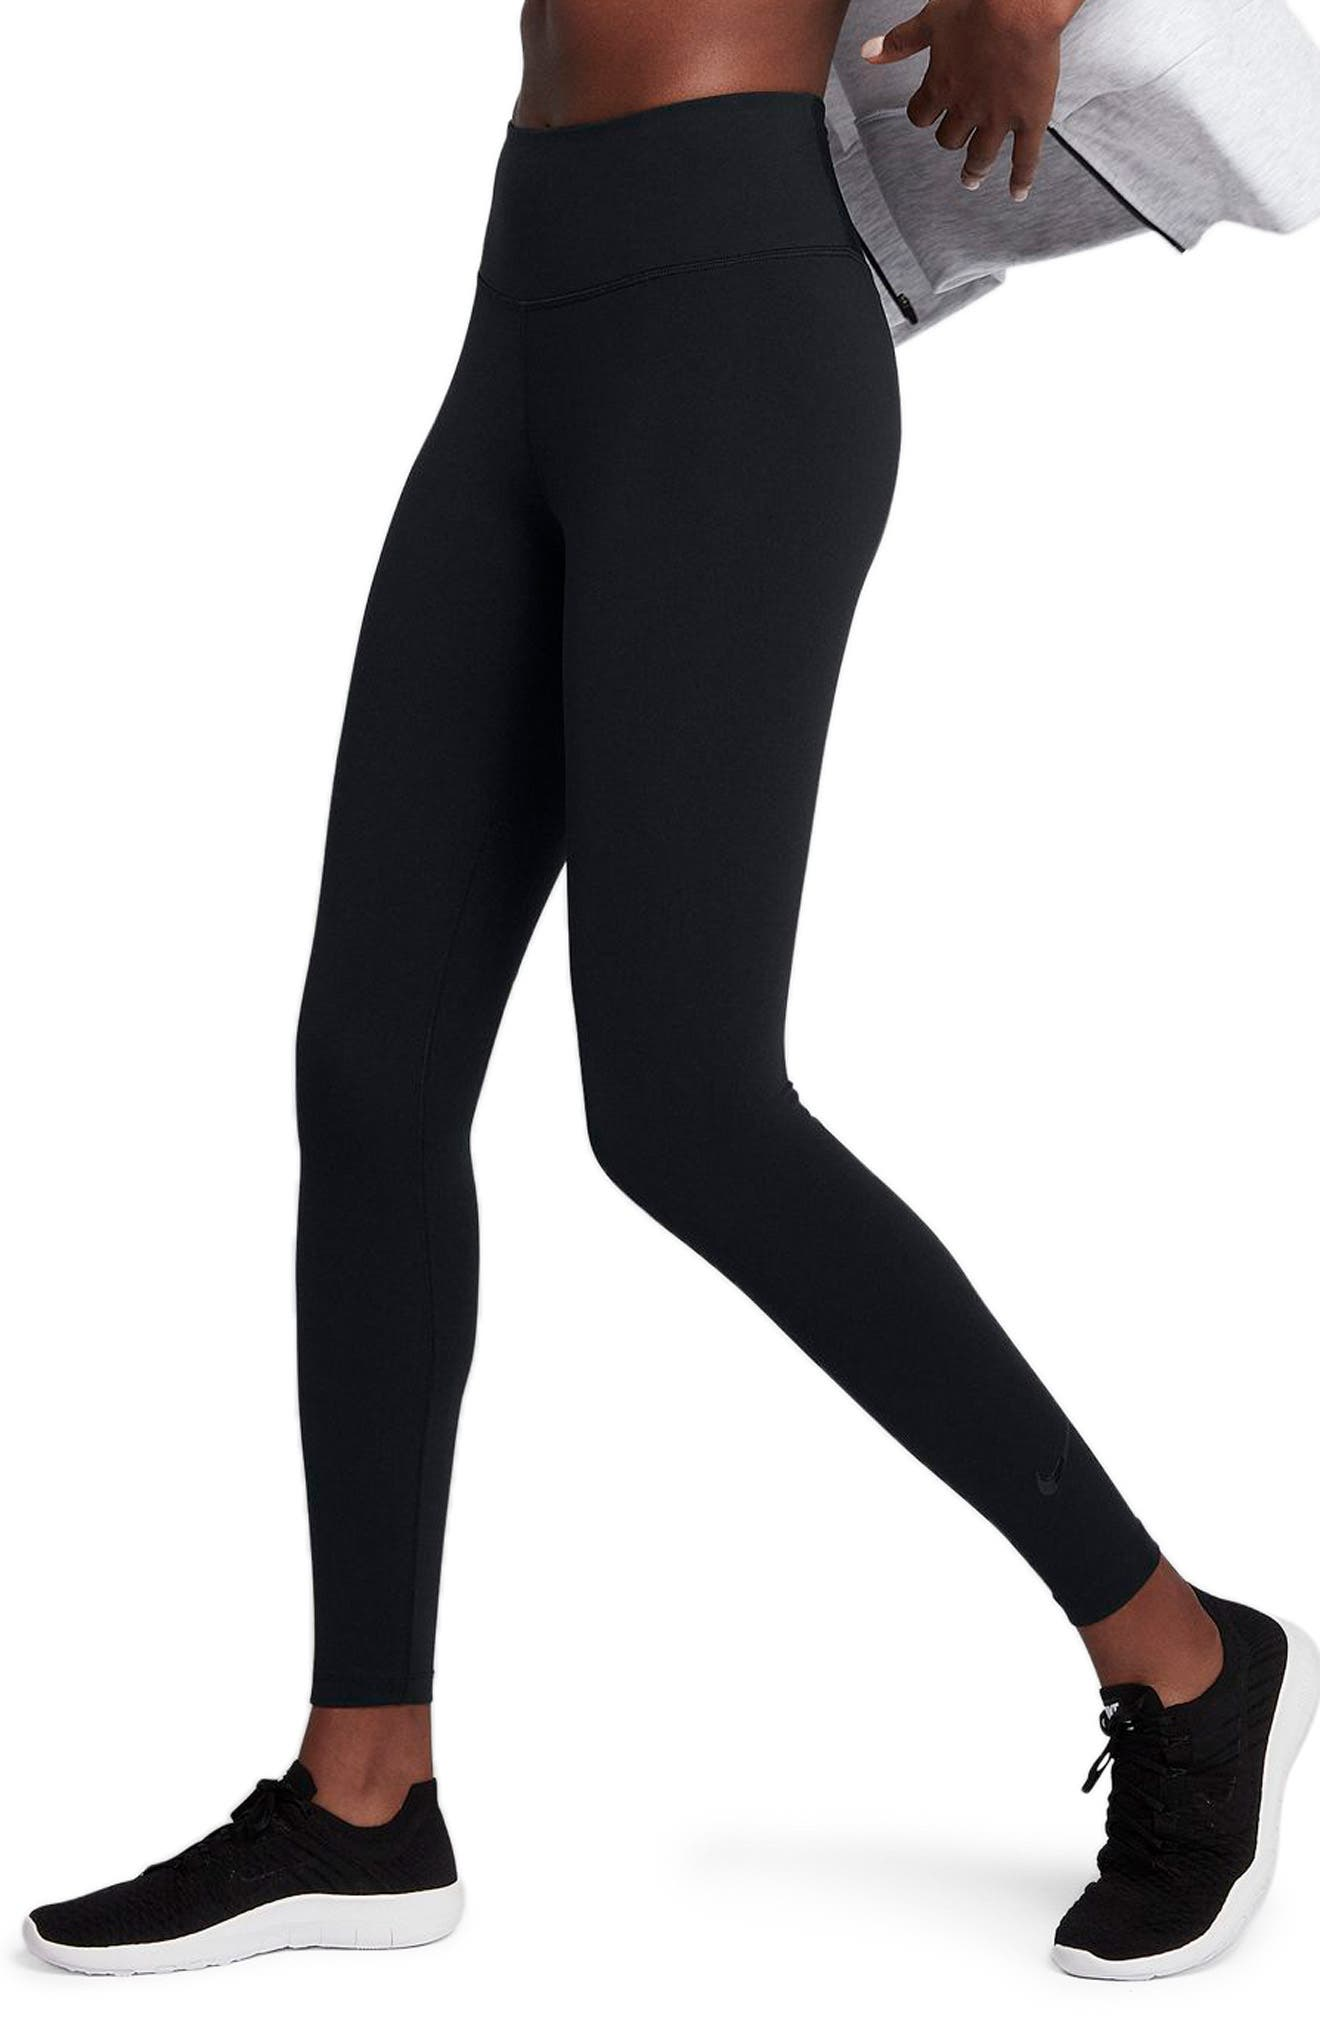 Sculpt Lux Training Tights,                             Alternate thumbnail 3, color,                             BLACK/ CLEAR